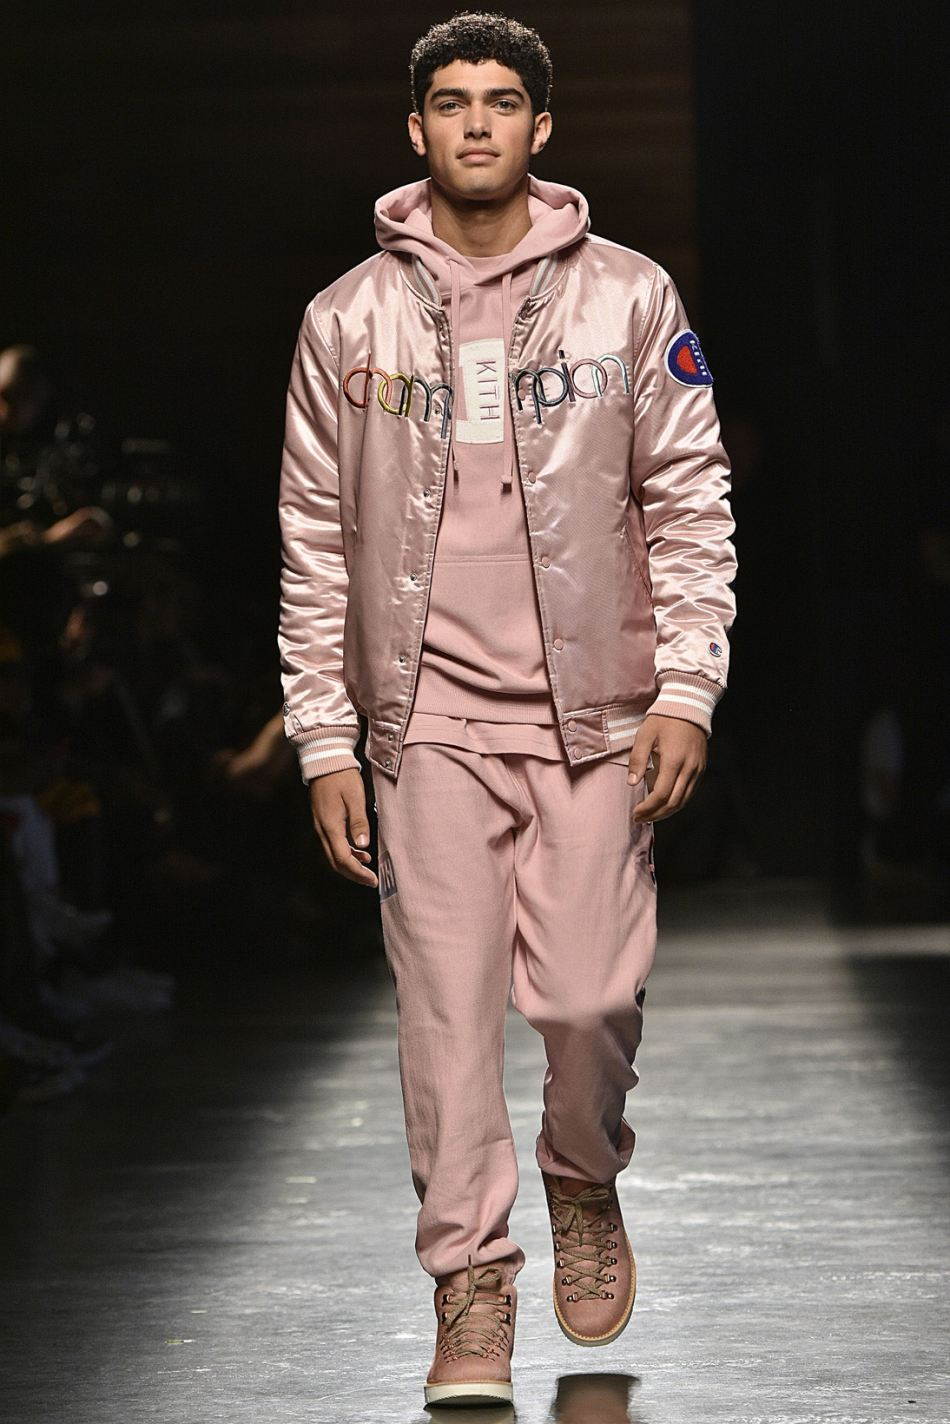 http3a2f2fhypebeast-com2fimage2f20172f092fkith-sport-2018-spring-summer-collection-runway-14